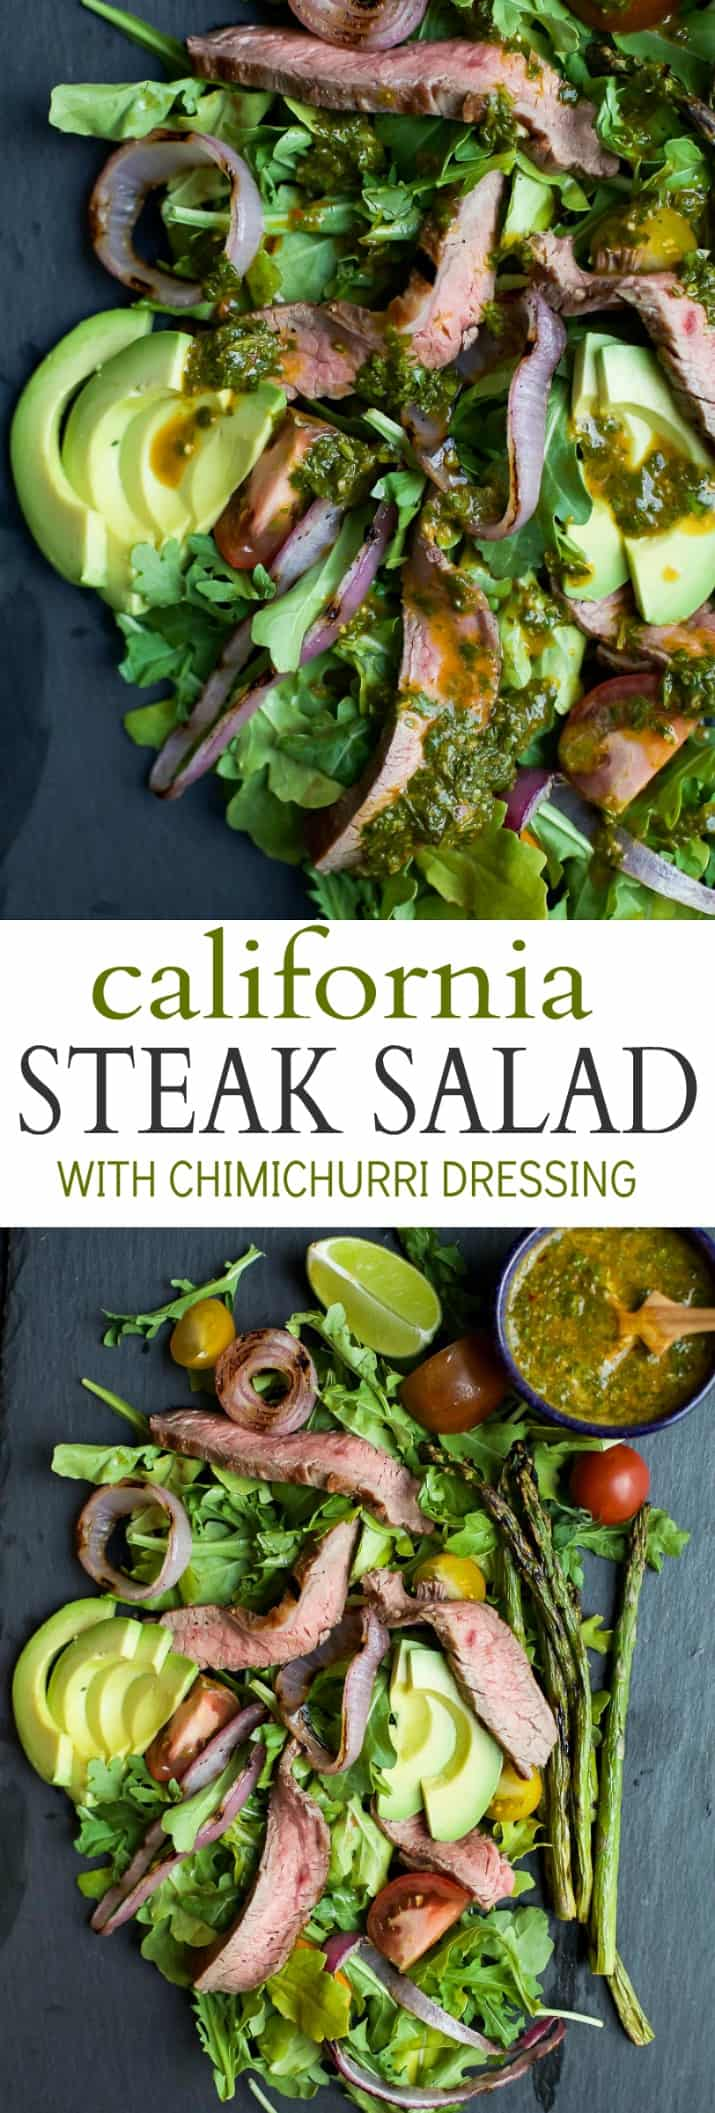 Title Image for my California Steak Salad with Chimichurri Dressing